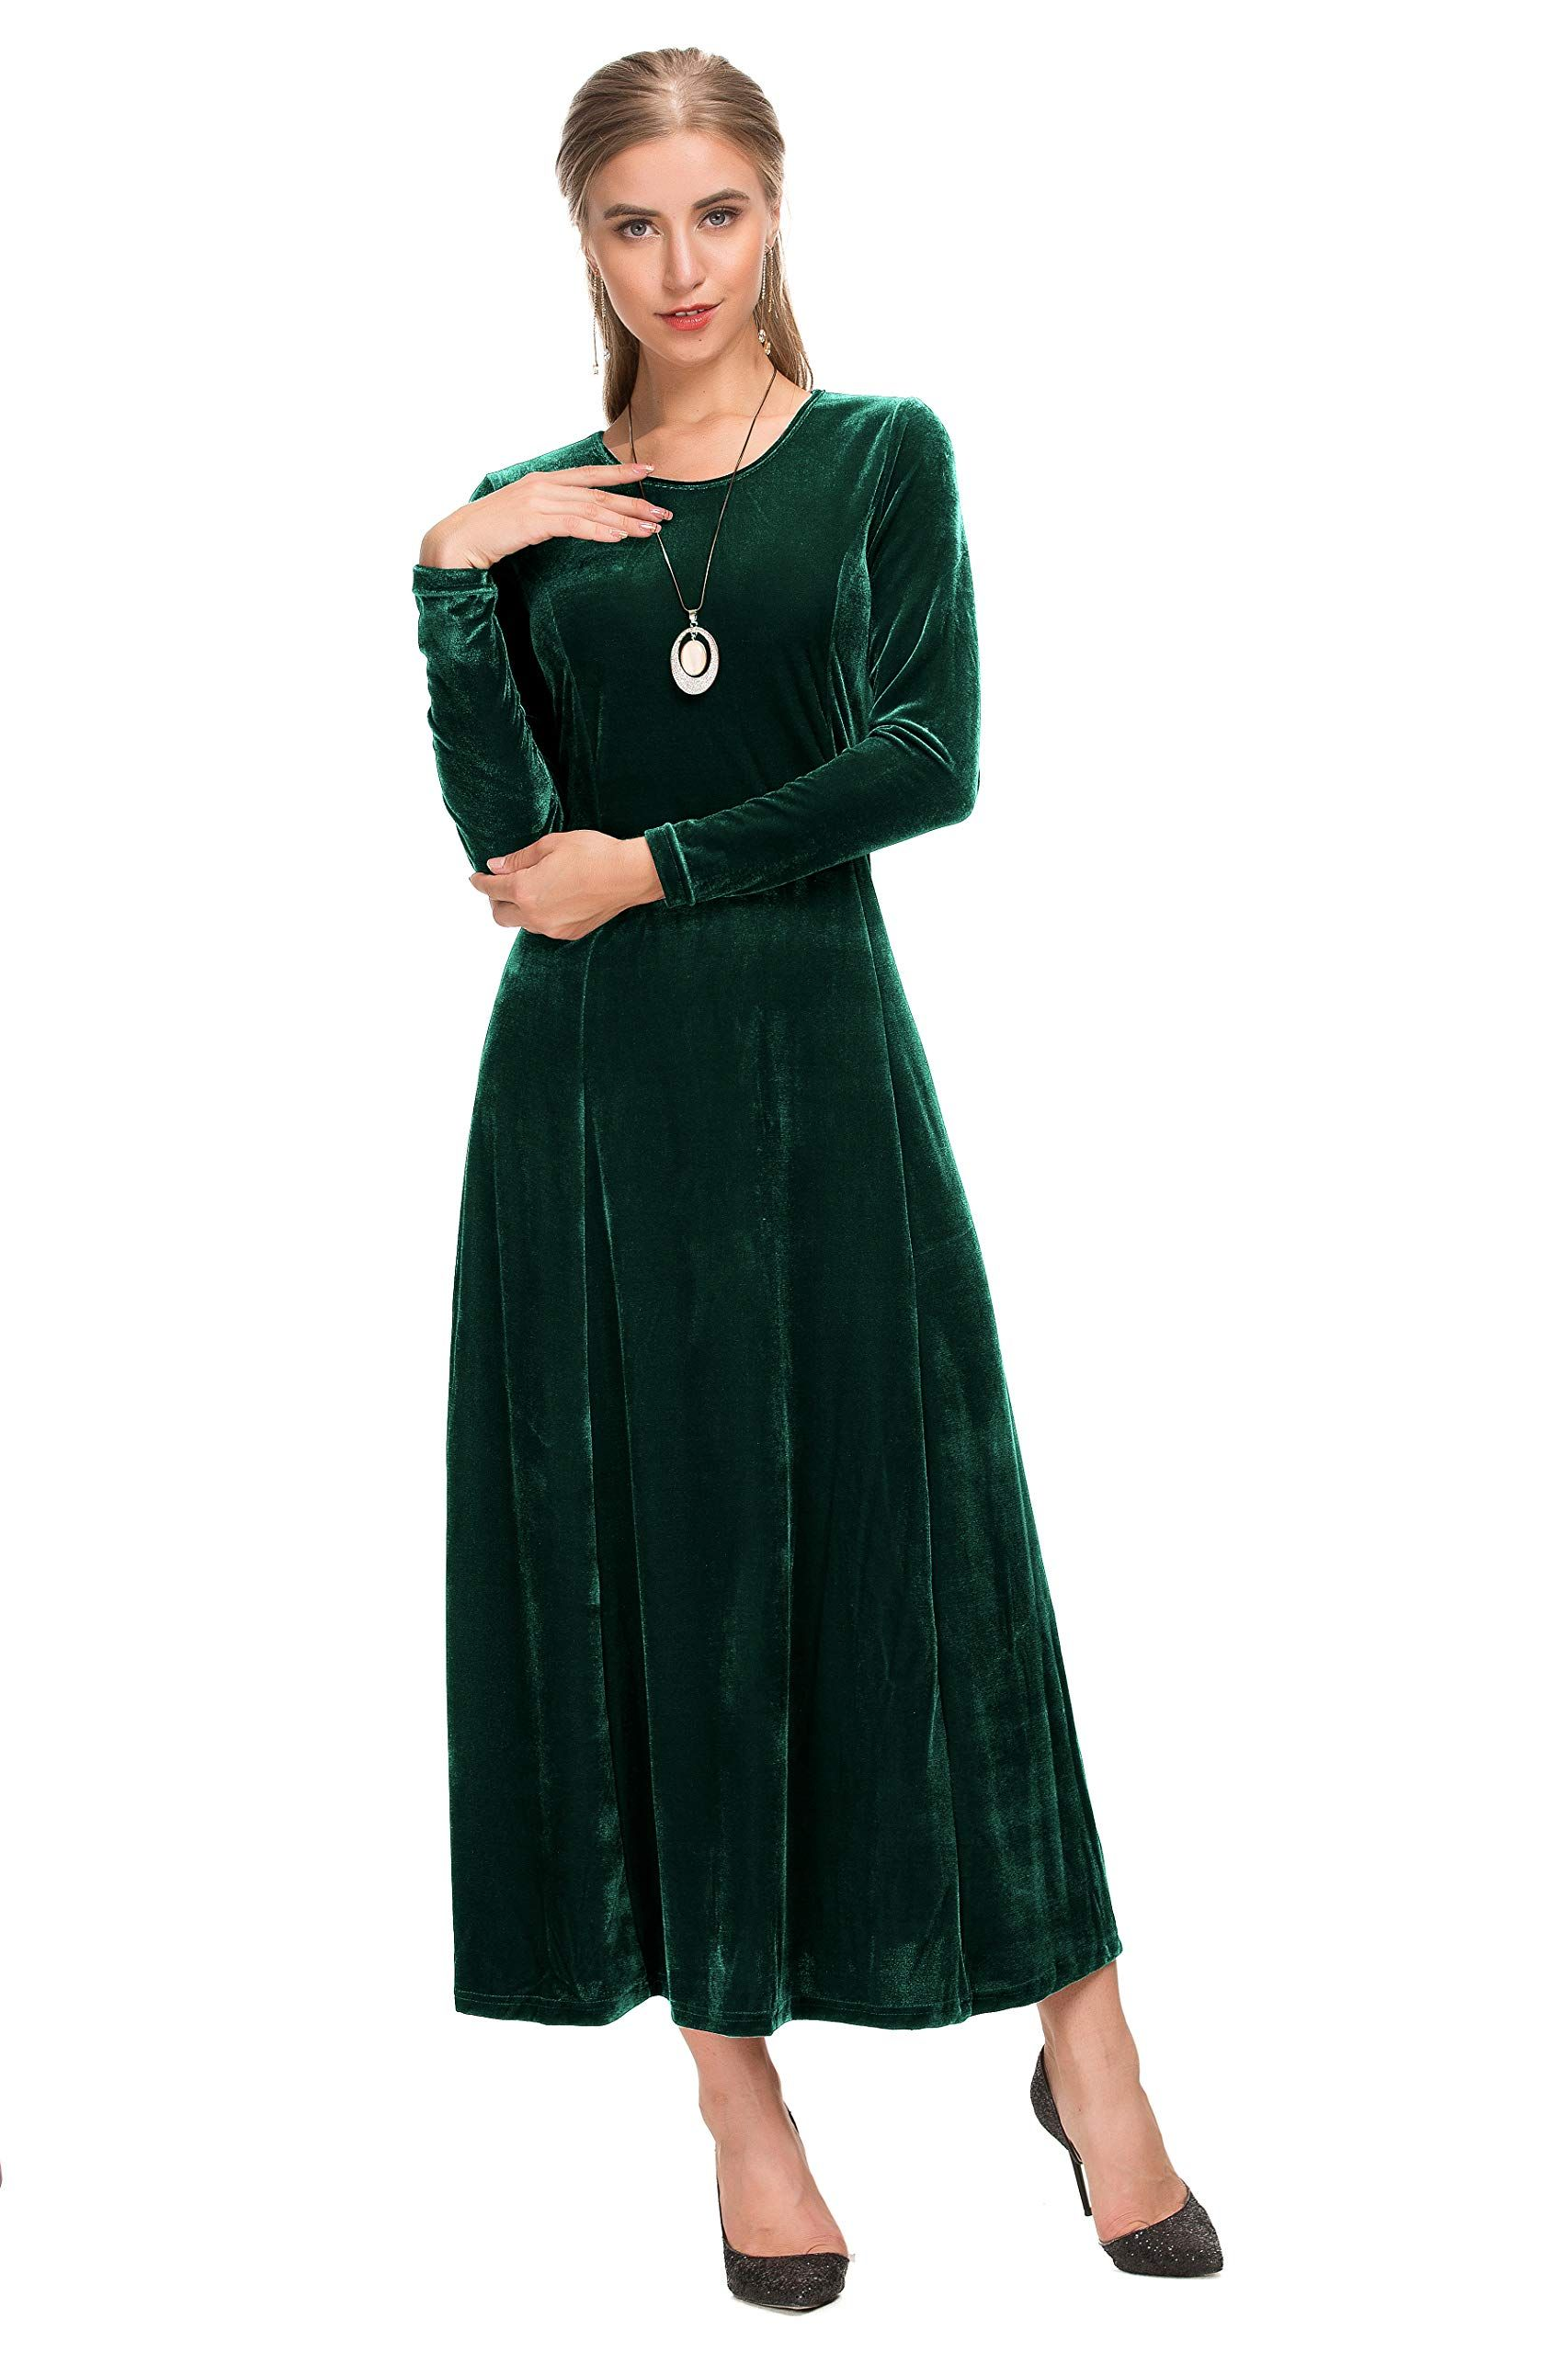 38f84d33e6 Le Vonfort Stylish Long Dress for Women Fit and Flare A Line Pretty Velvet  Wedding Party